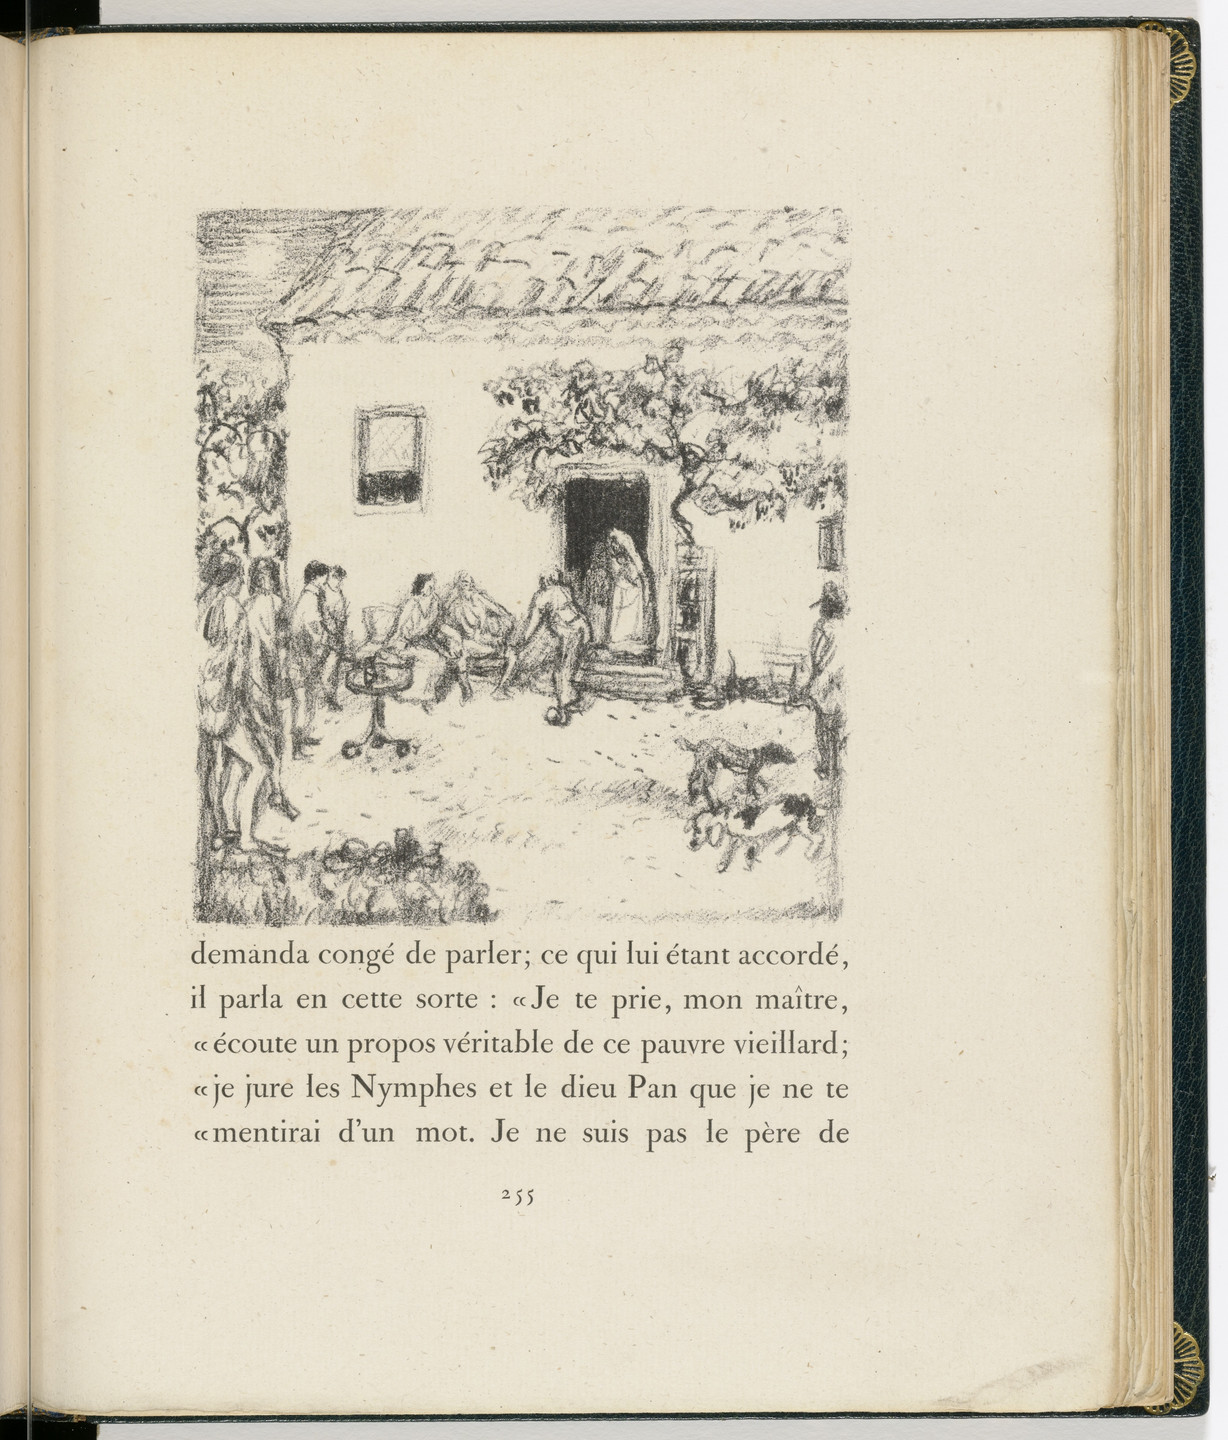 Pierre Bonnard. In-text plate (page 255) from Daphnis et Chloé. 1902